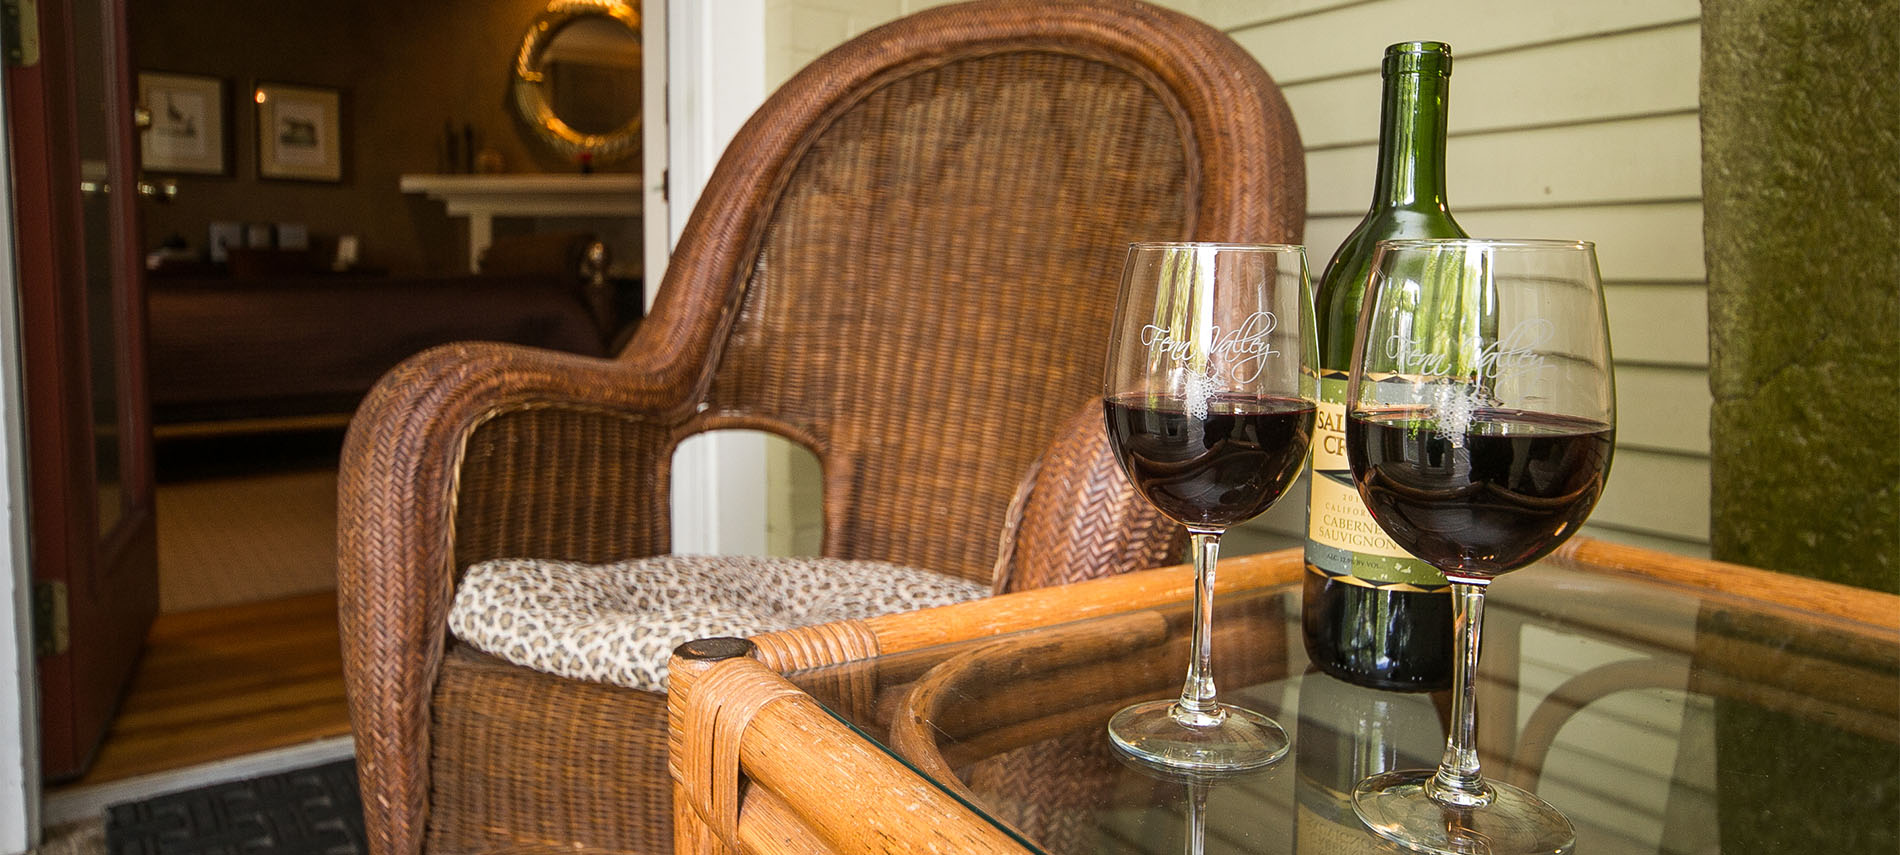 Wine bottle and two glasses of wine sitting next to a wicker chair with door to room open.